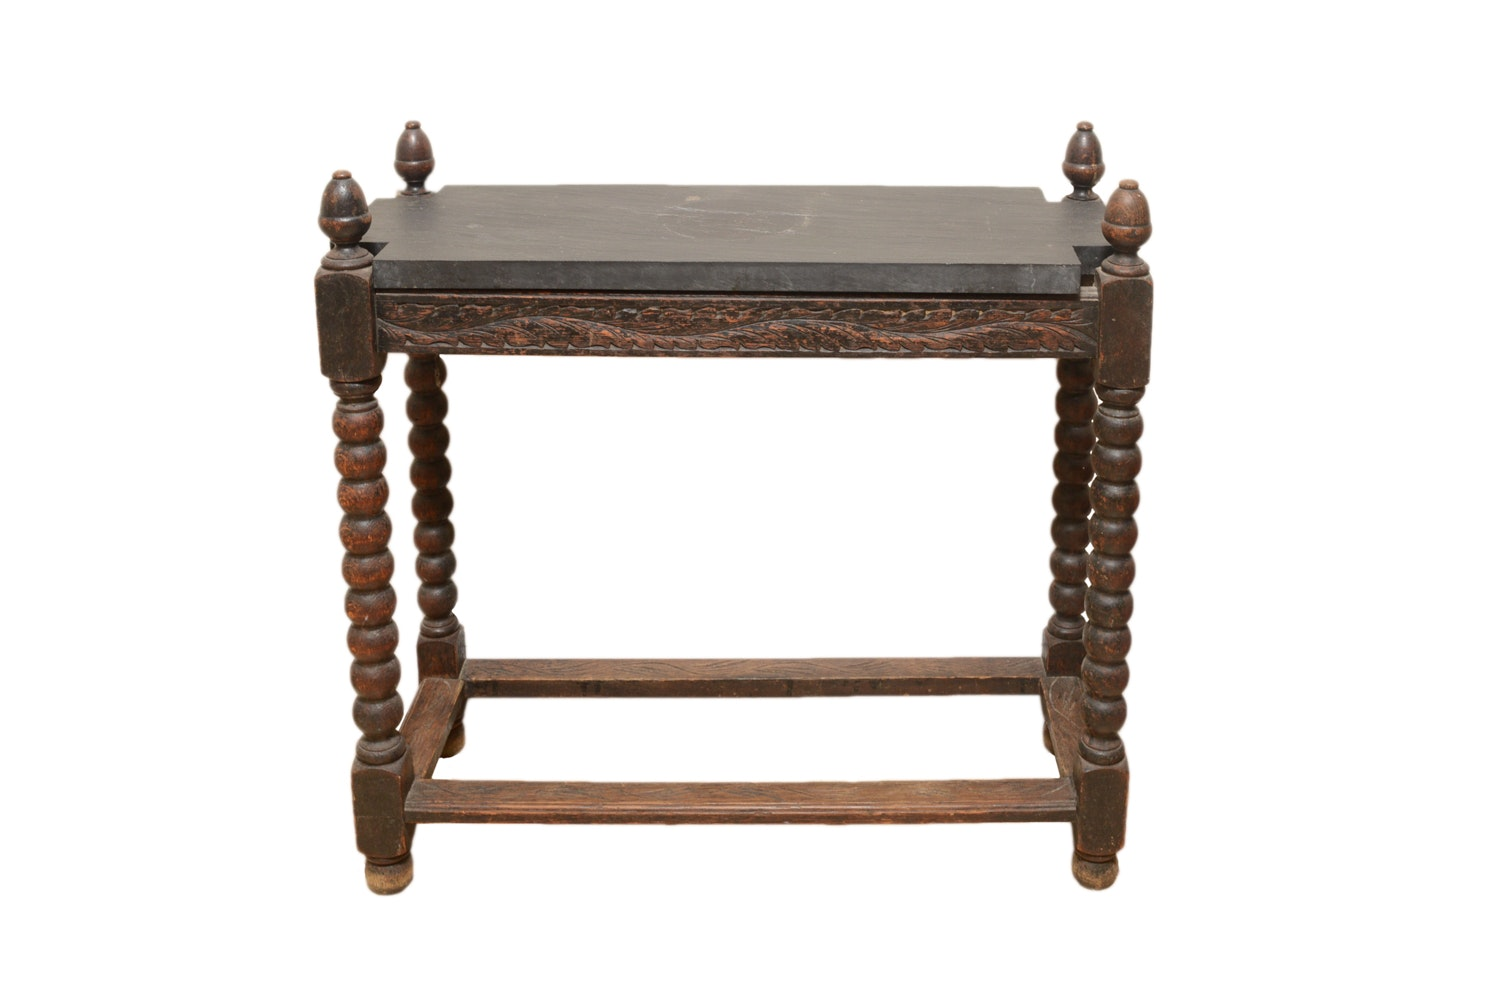 Antique William and Mary Style Console Table